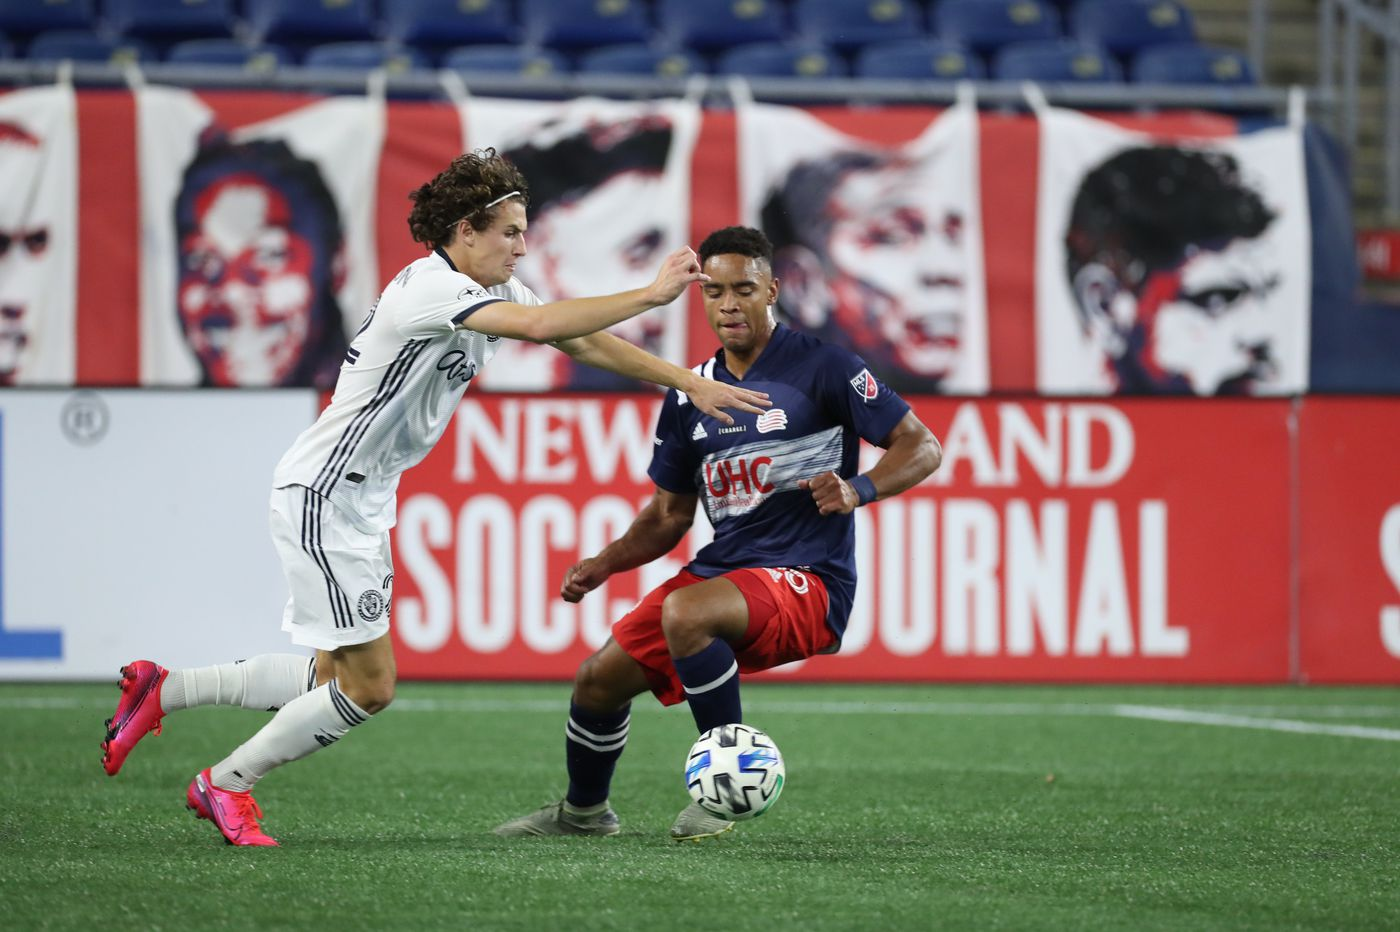 Union play 0-0 tie at New England Revolution in first game of resumed regular season